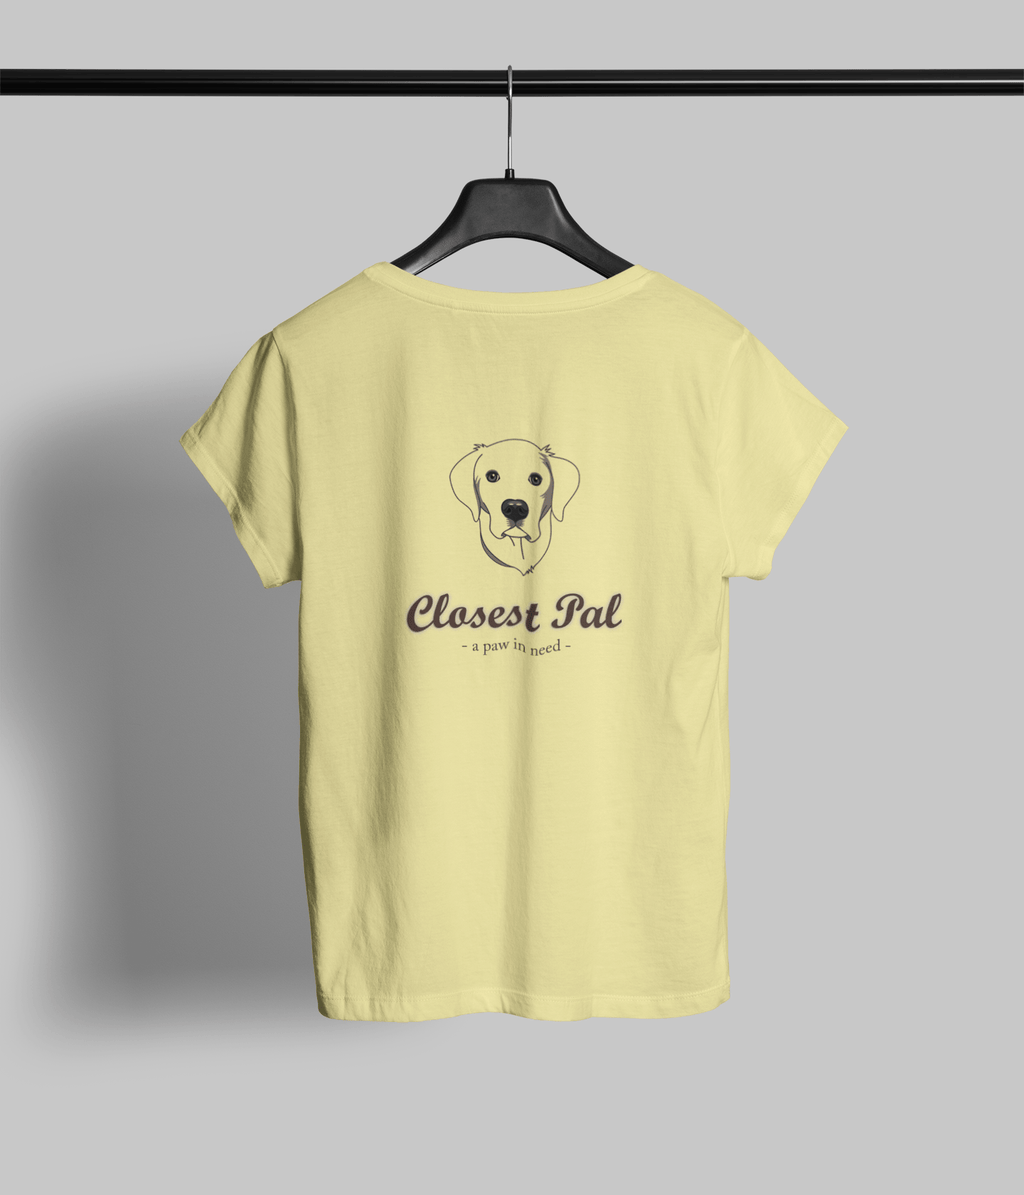 Closest Pal Clothing Printrove Butter Yellow 1